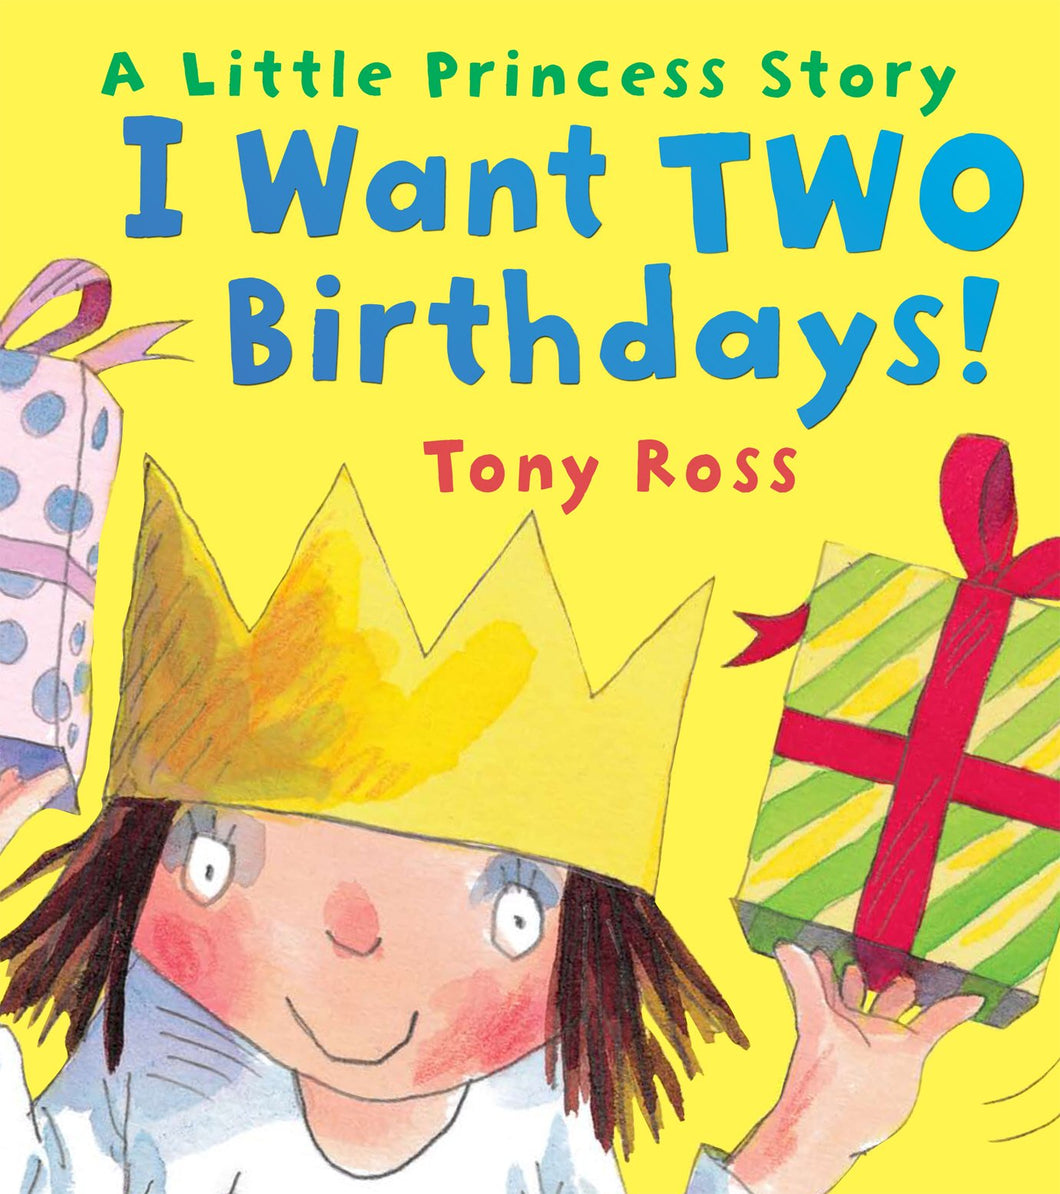 Little Princess: I Want Two Birthdays!